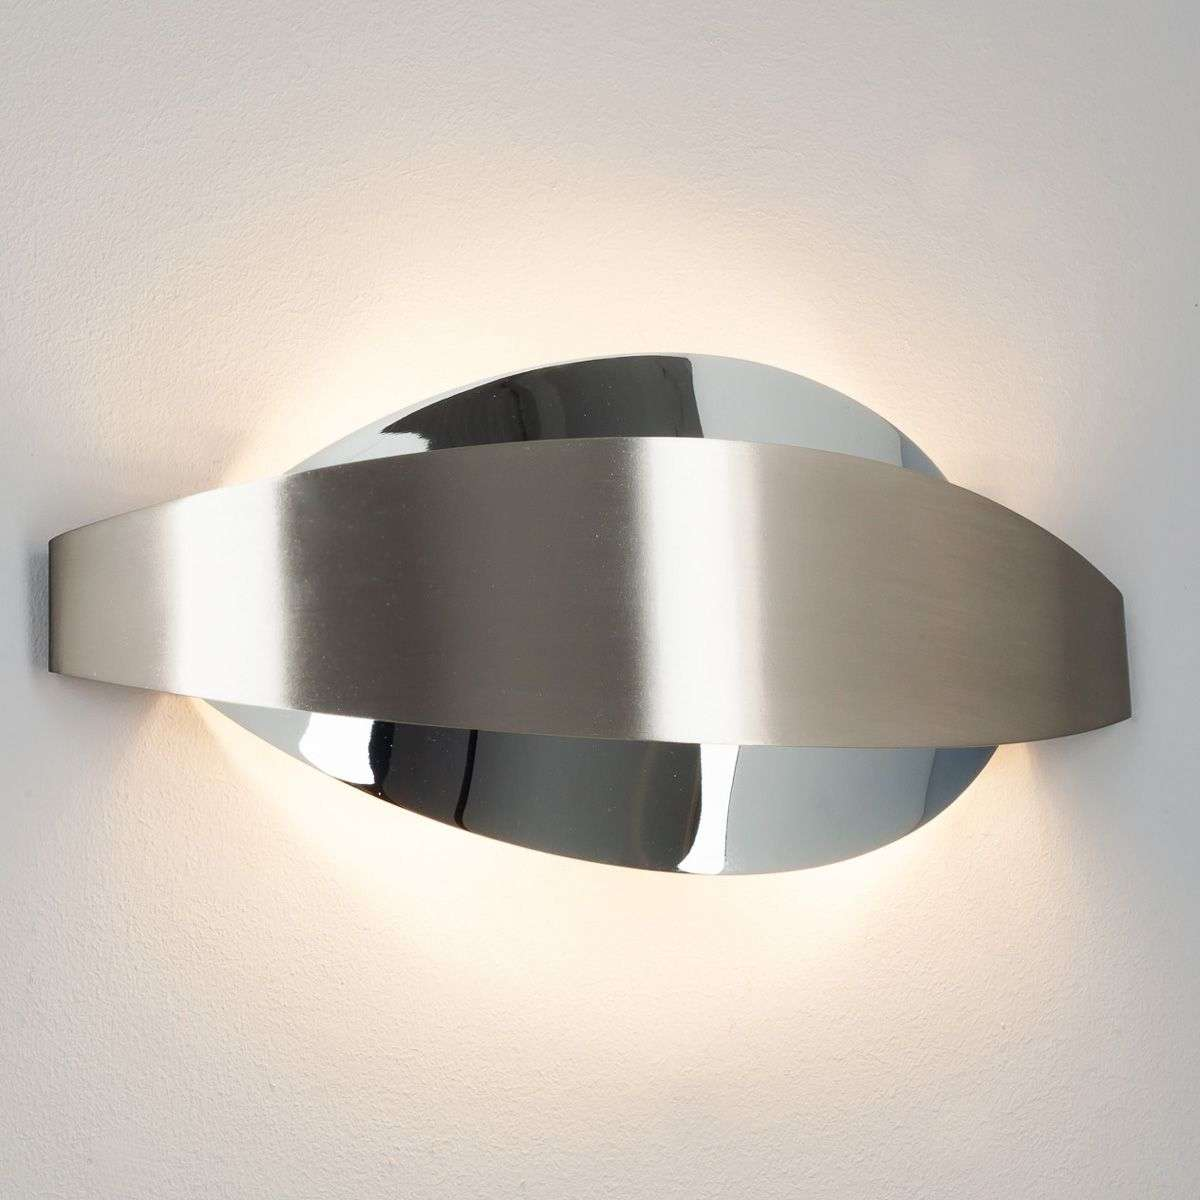 extravagant metal wall light lonna with g9 leds. Black Bedroom Furniture Sets. Home Design Ideas